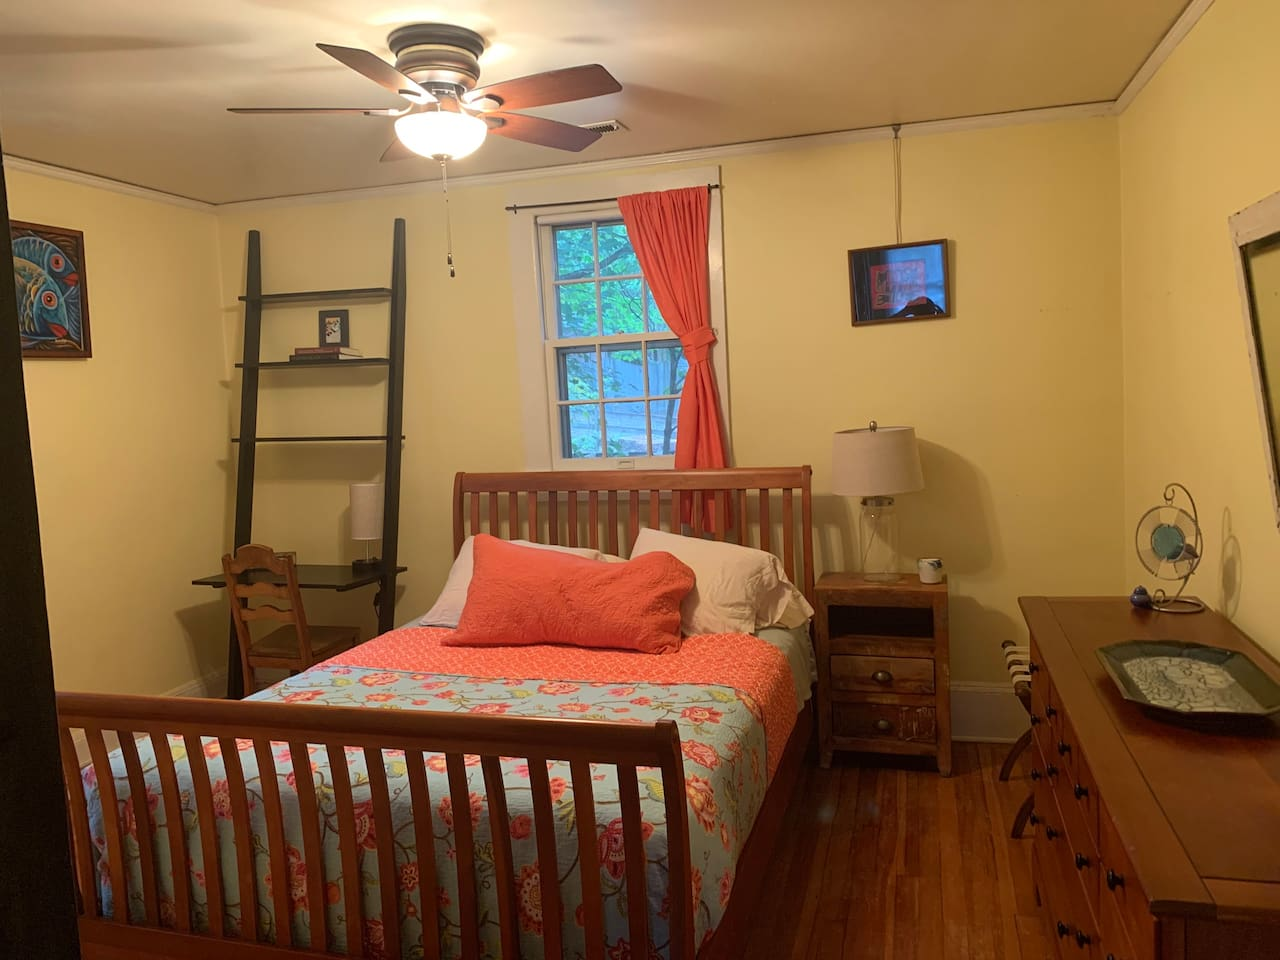 Queen bed, desk/light with USB plugs, luggage rack, closet and dresser storage